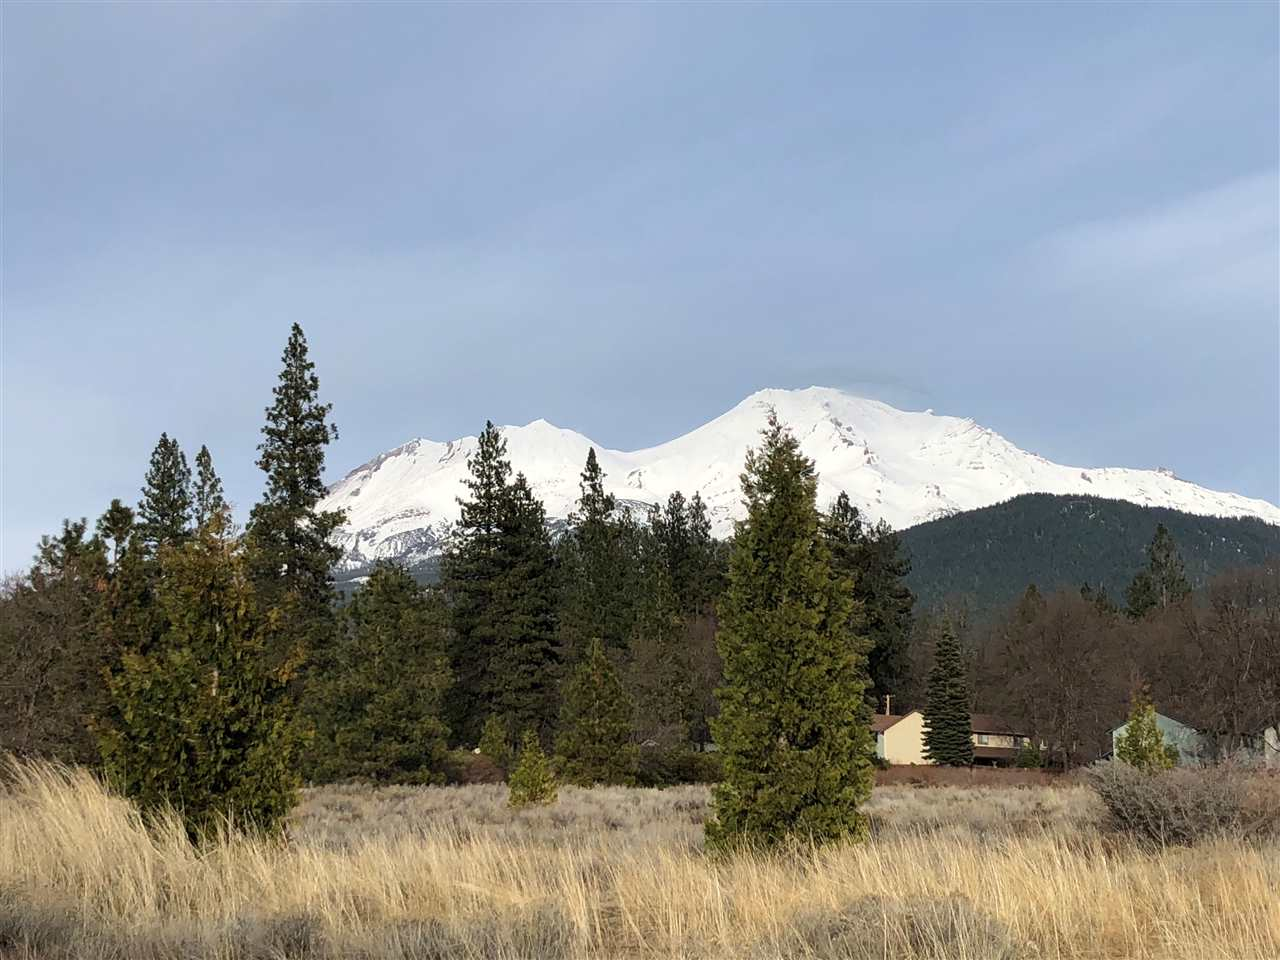 10 acres in the city limits. Views and developement potential. 42 sewer, water and drain permits available for purchase from seller.